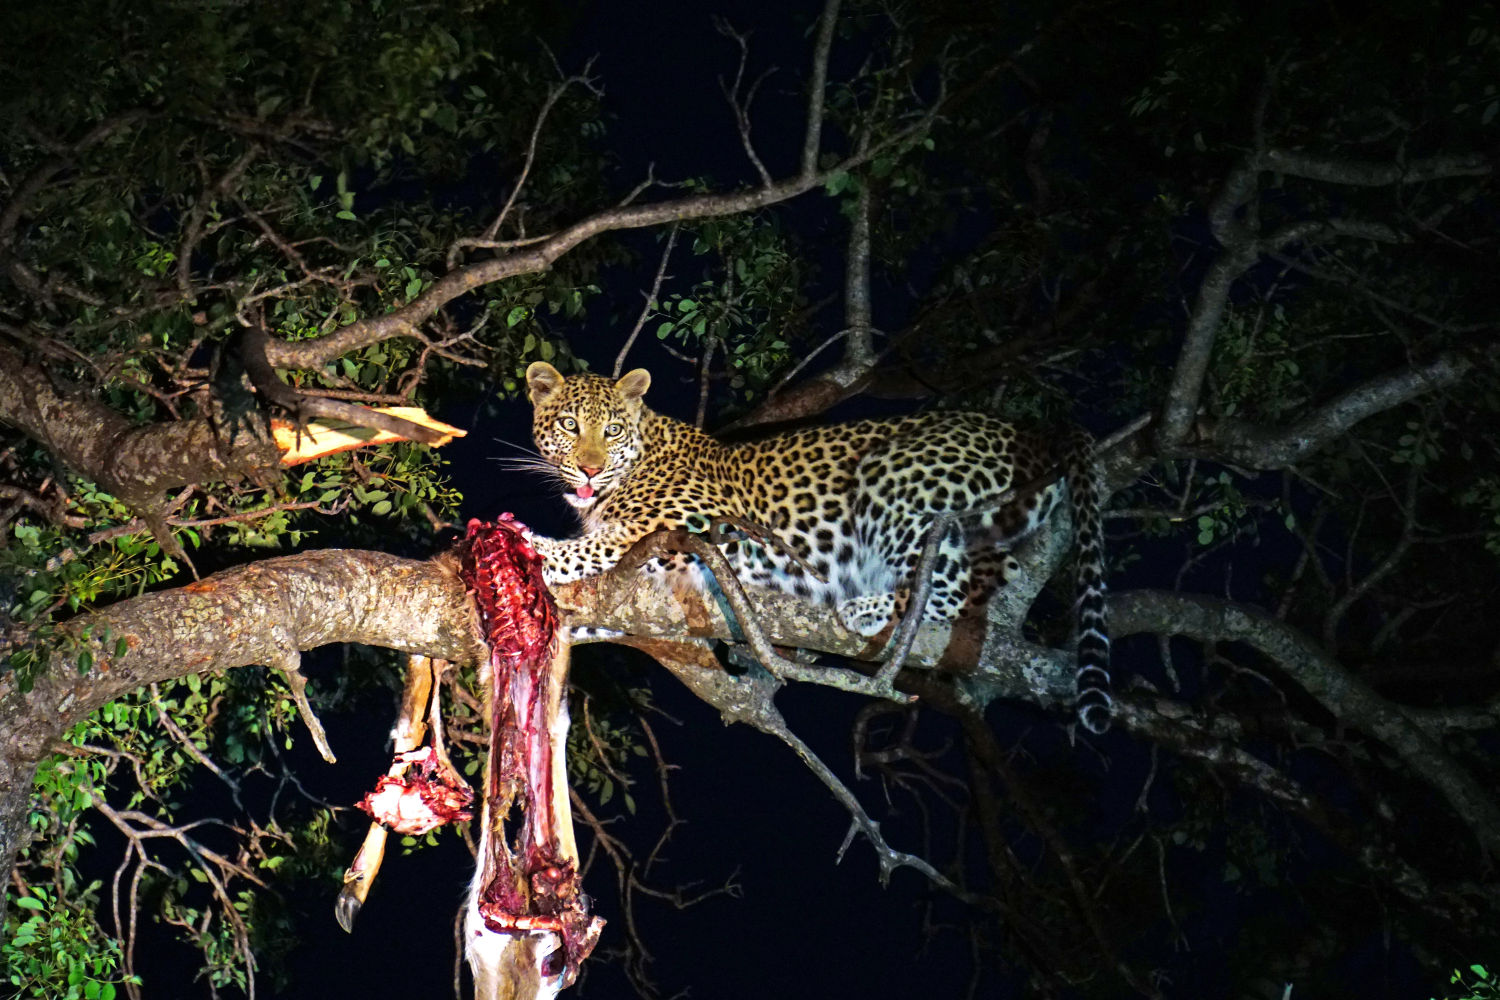 leopard eating meat|yourhealthyprostate.com - YOUR HEALTHY PROSTATE - HOW TO CURE PROSTATE ONCE AND FOR ALL AND KEEP IT HEALTHY